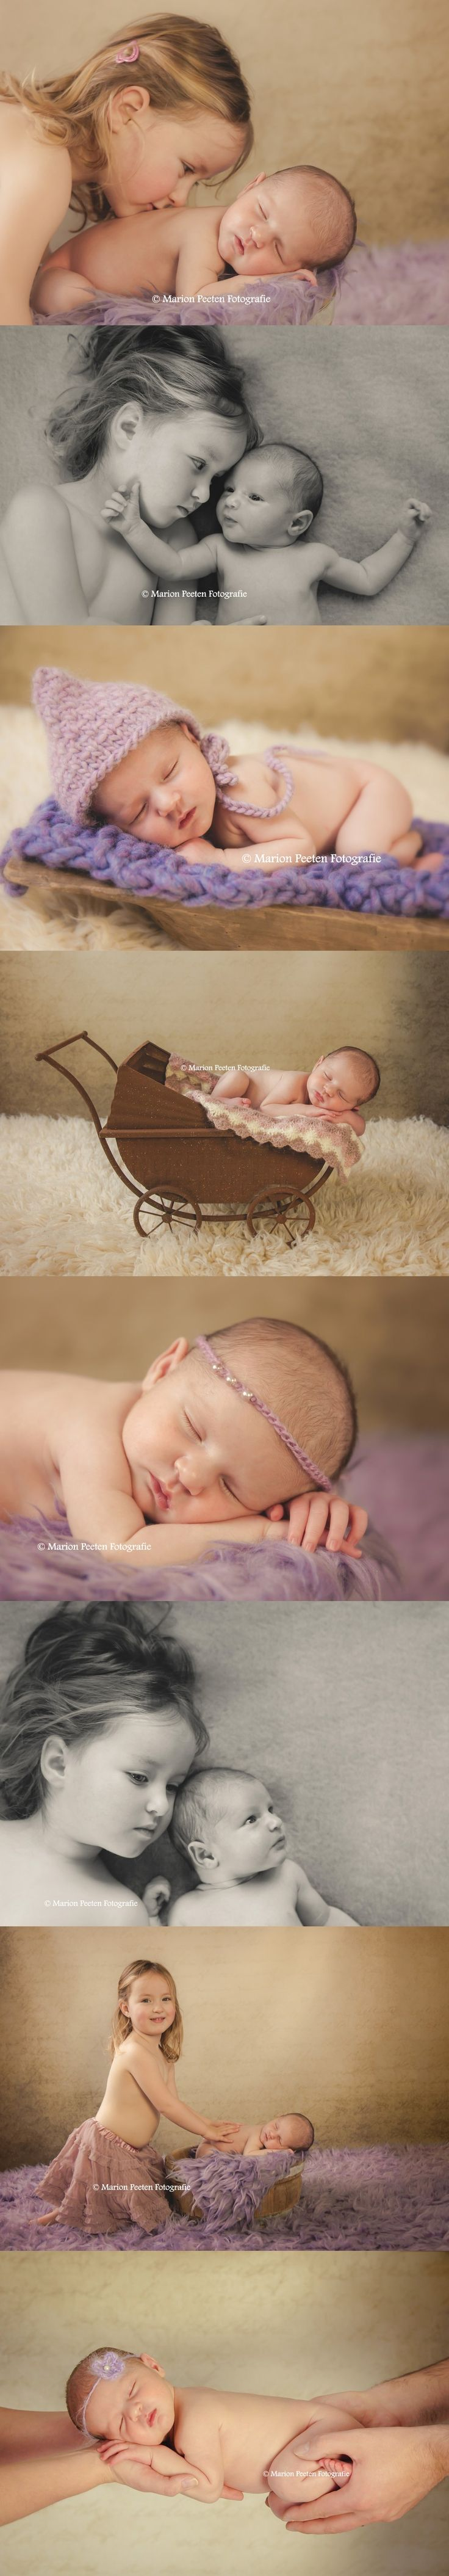 Newborn studio fotografie, Newborn studio photography with sister